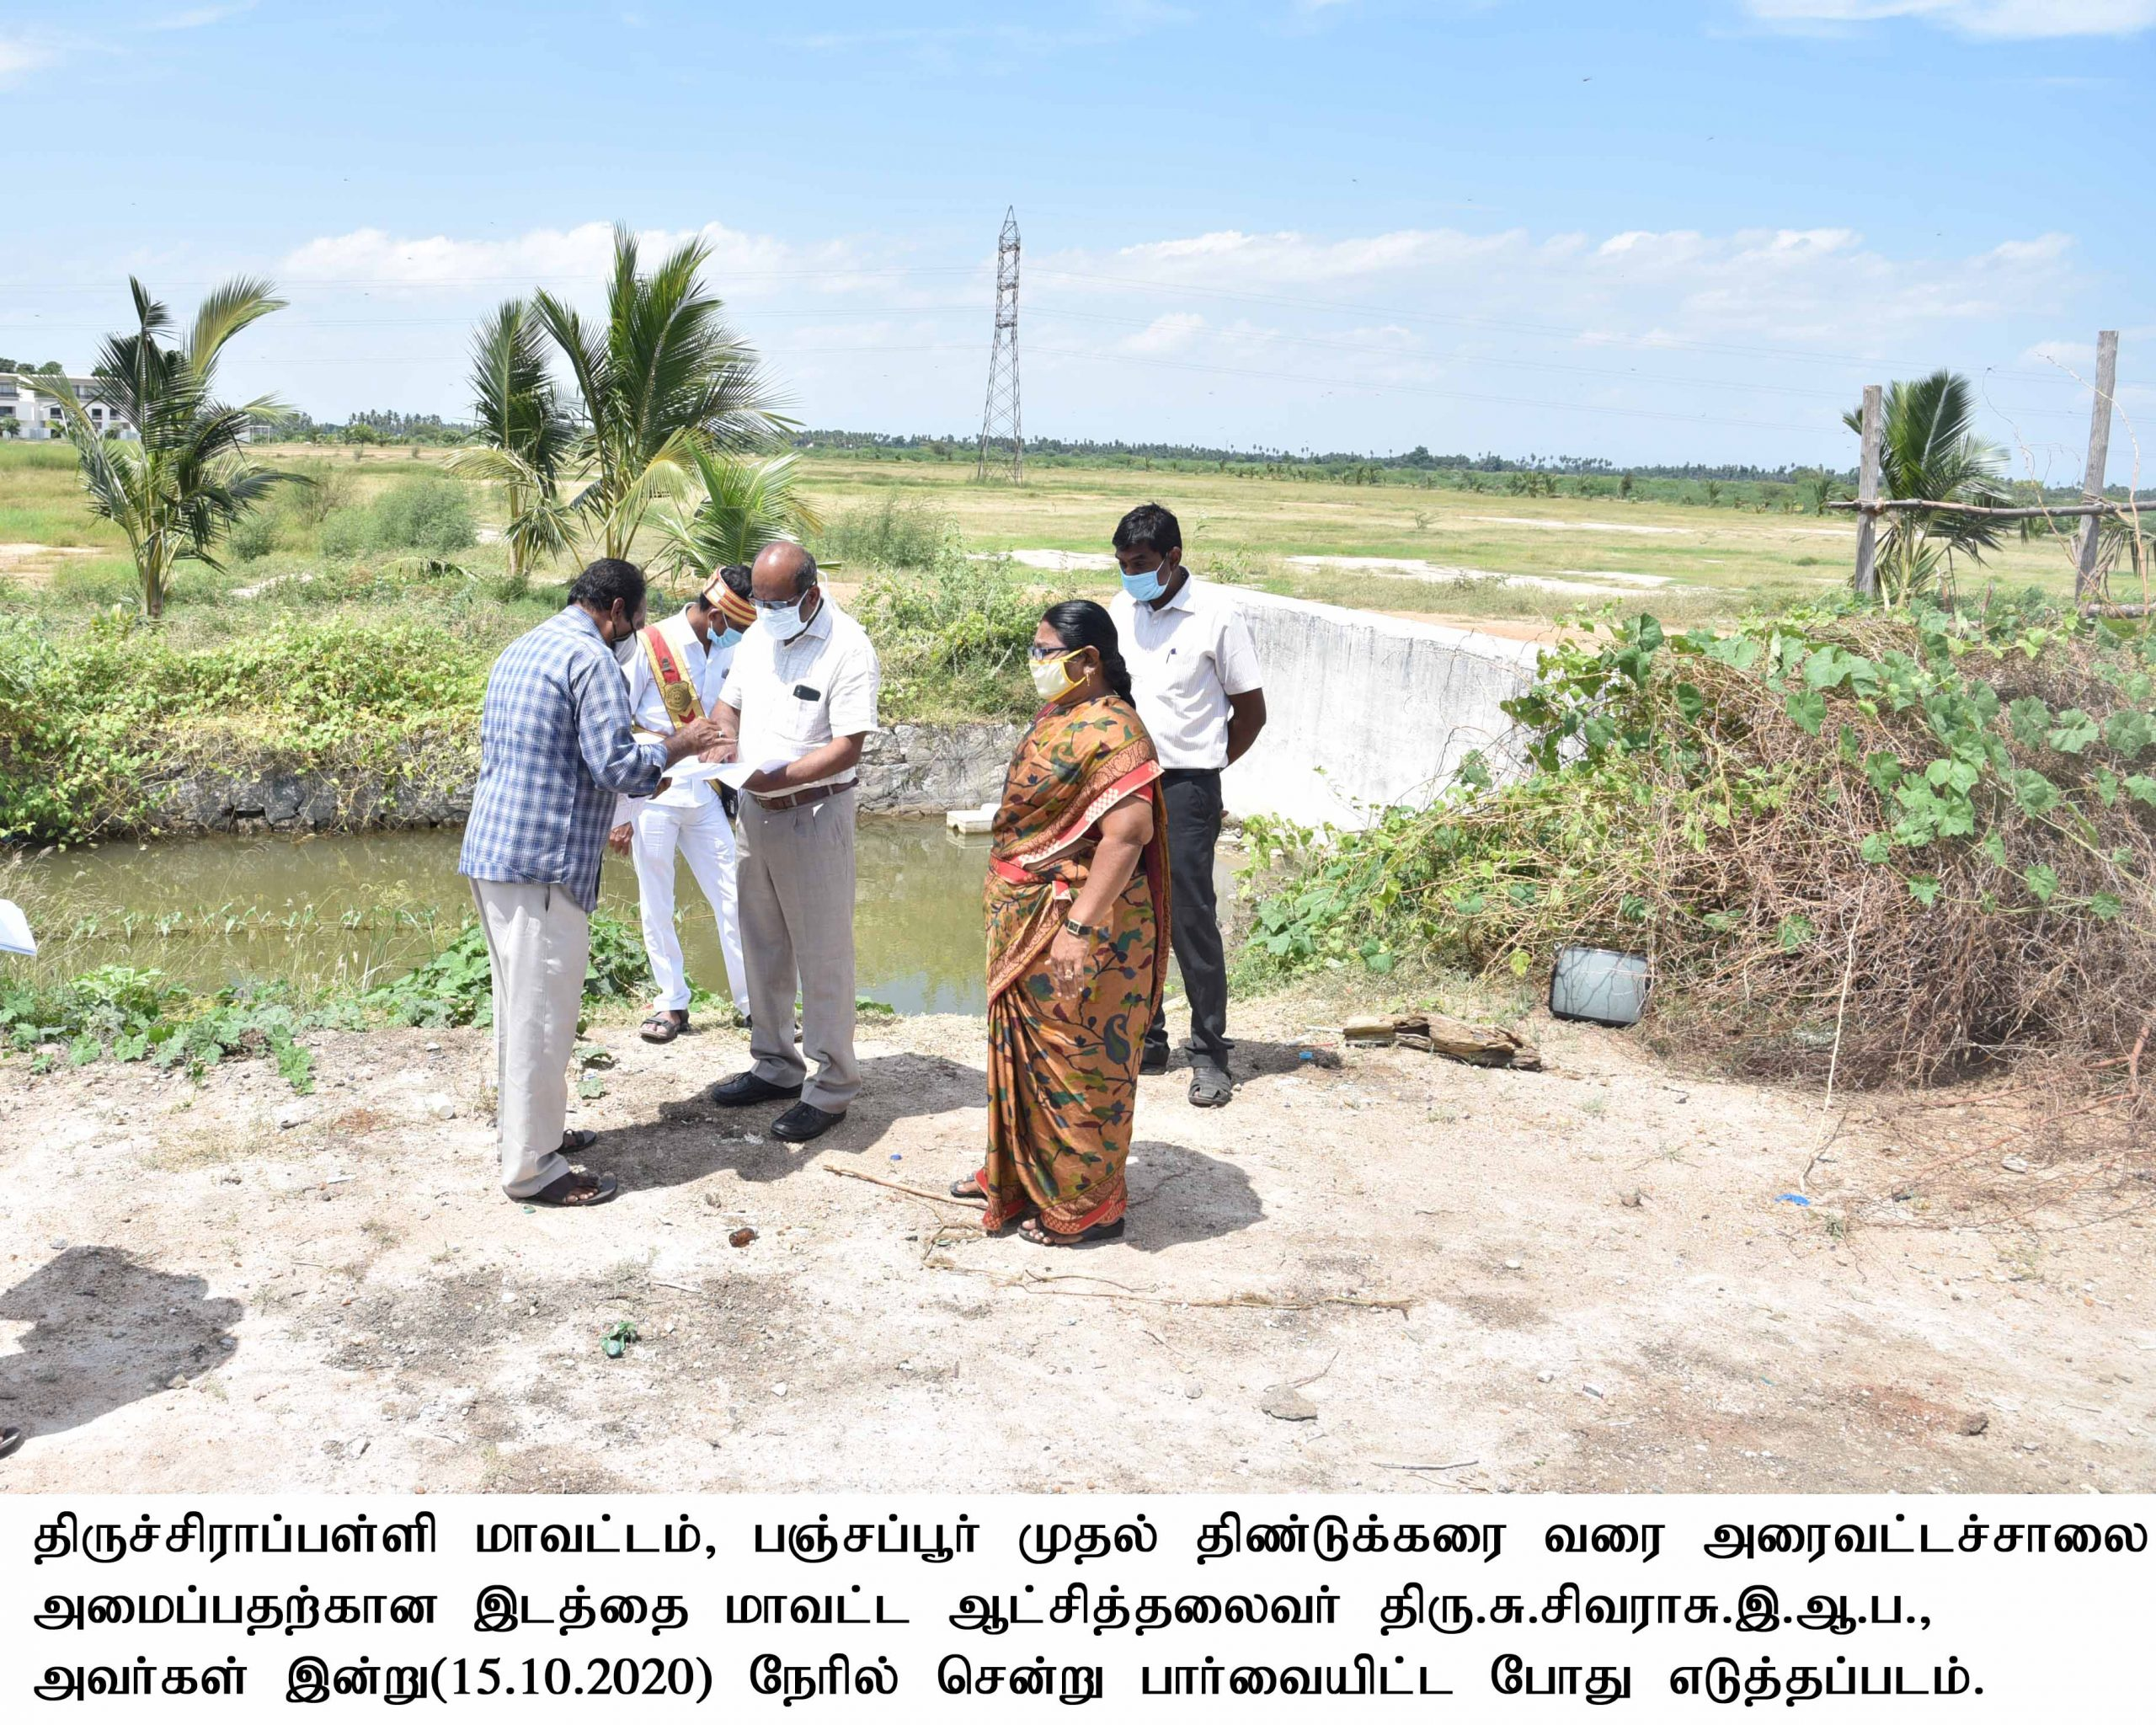 District Collector Inspected the Highways Dept. Semi Ring Road Project between Panchapoor to Dindigul on 15.10.2020